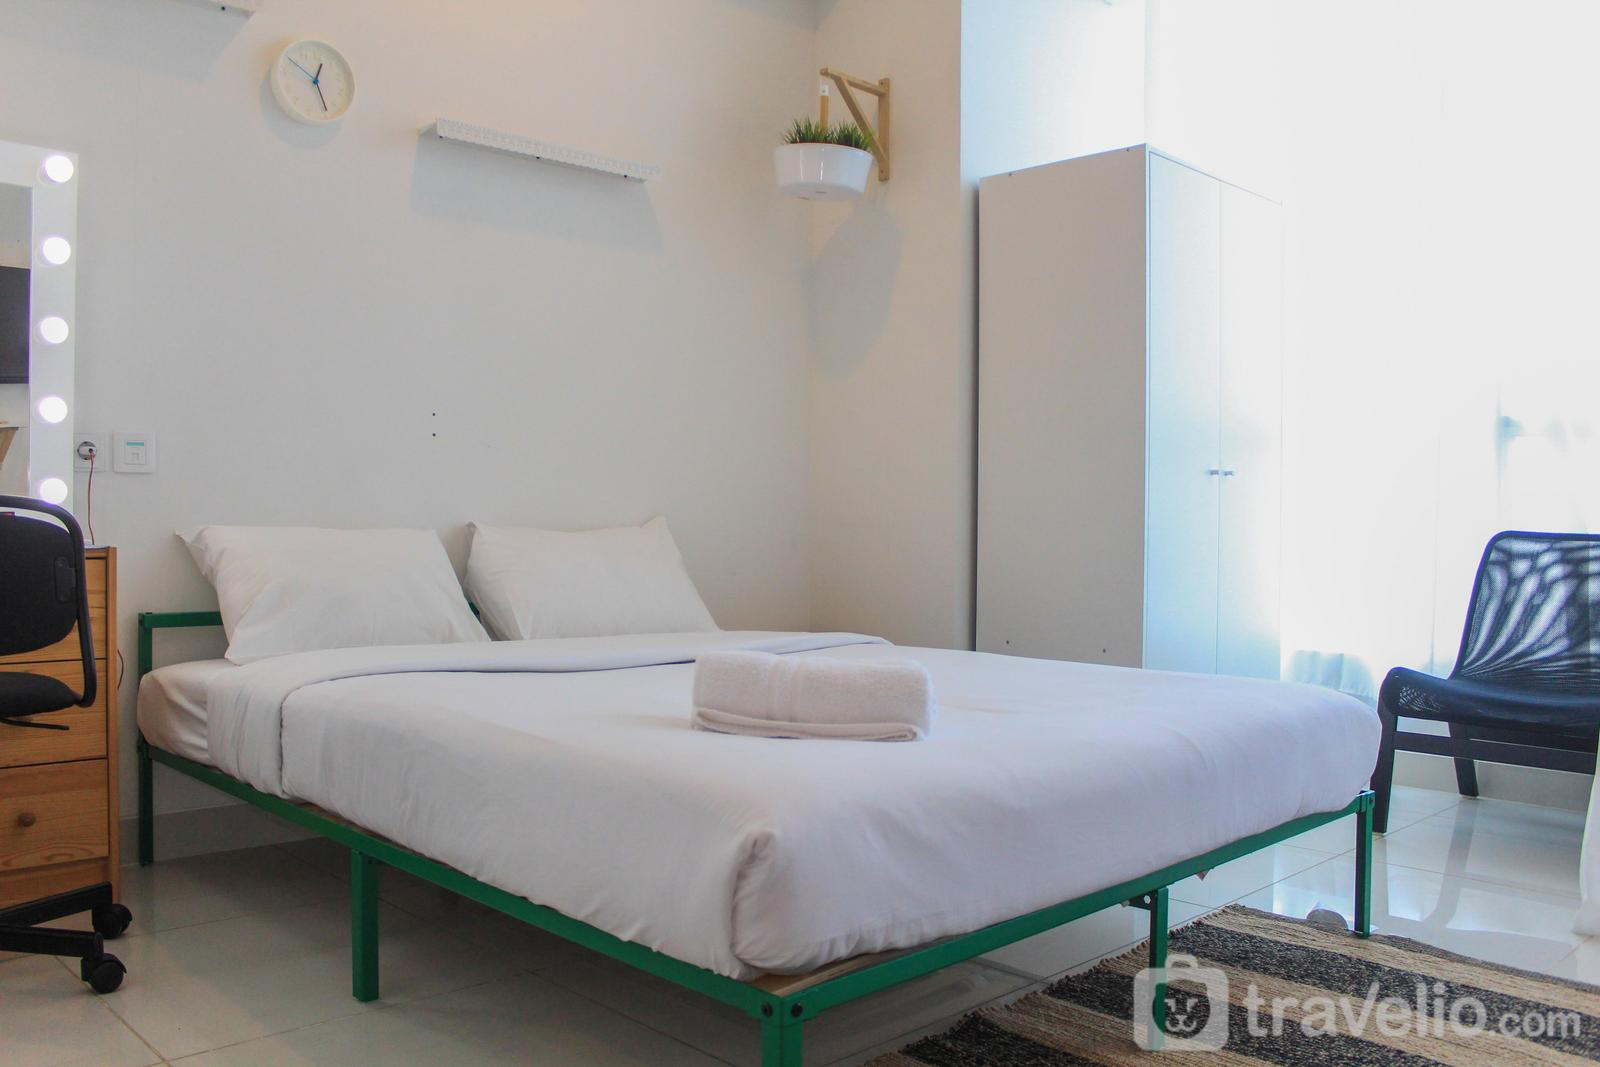 Roseville (Soho & Suite) Apartment - Cool and Comfy Studio at Roseville SOHO & Suite Apartment By Travelio